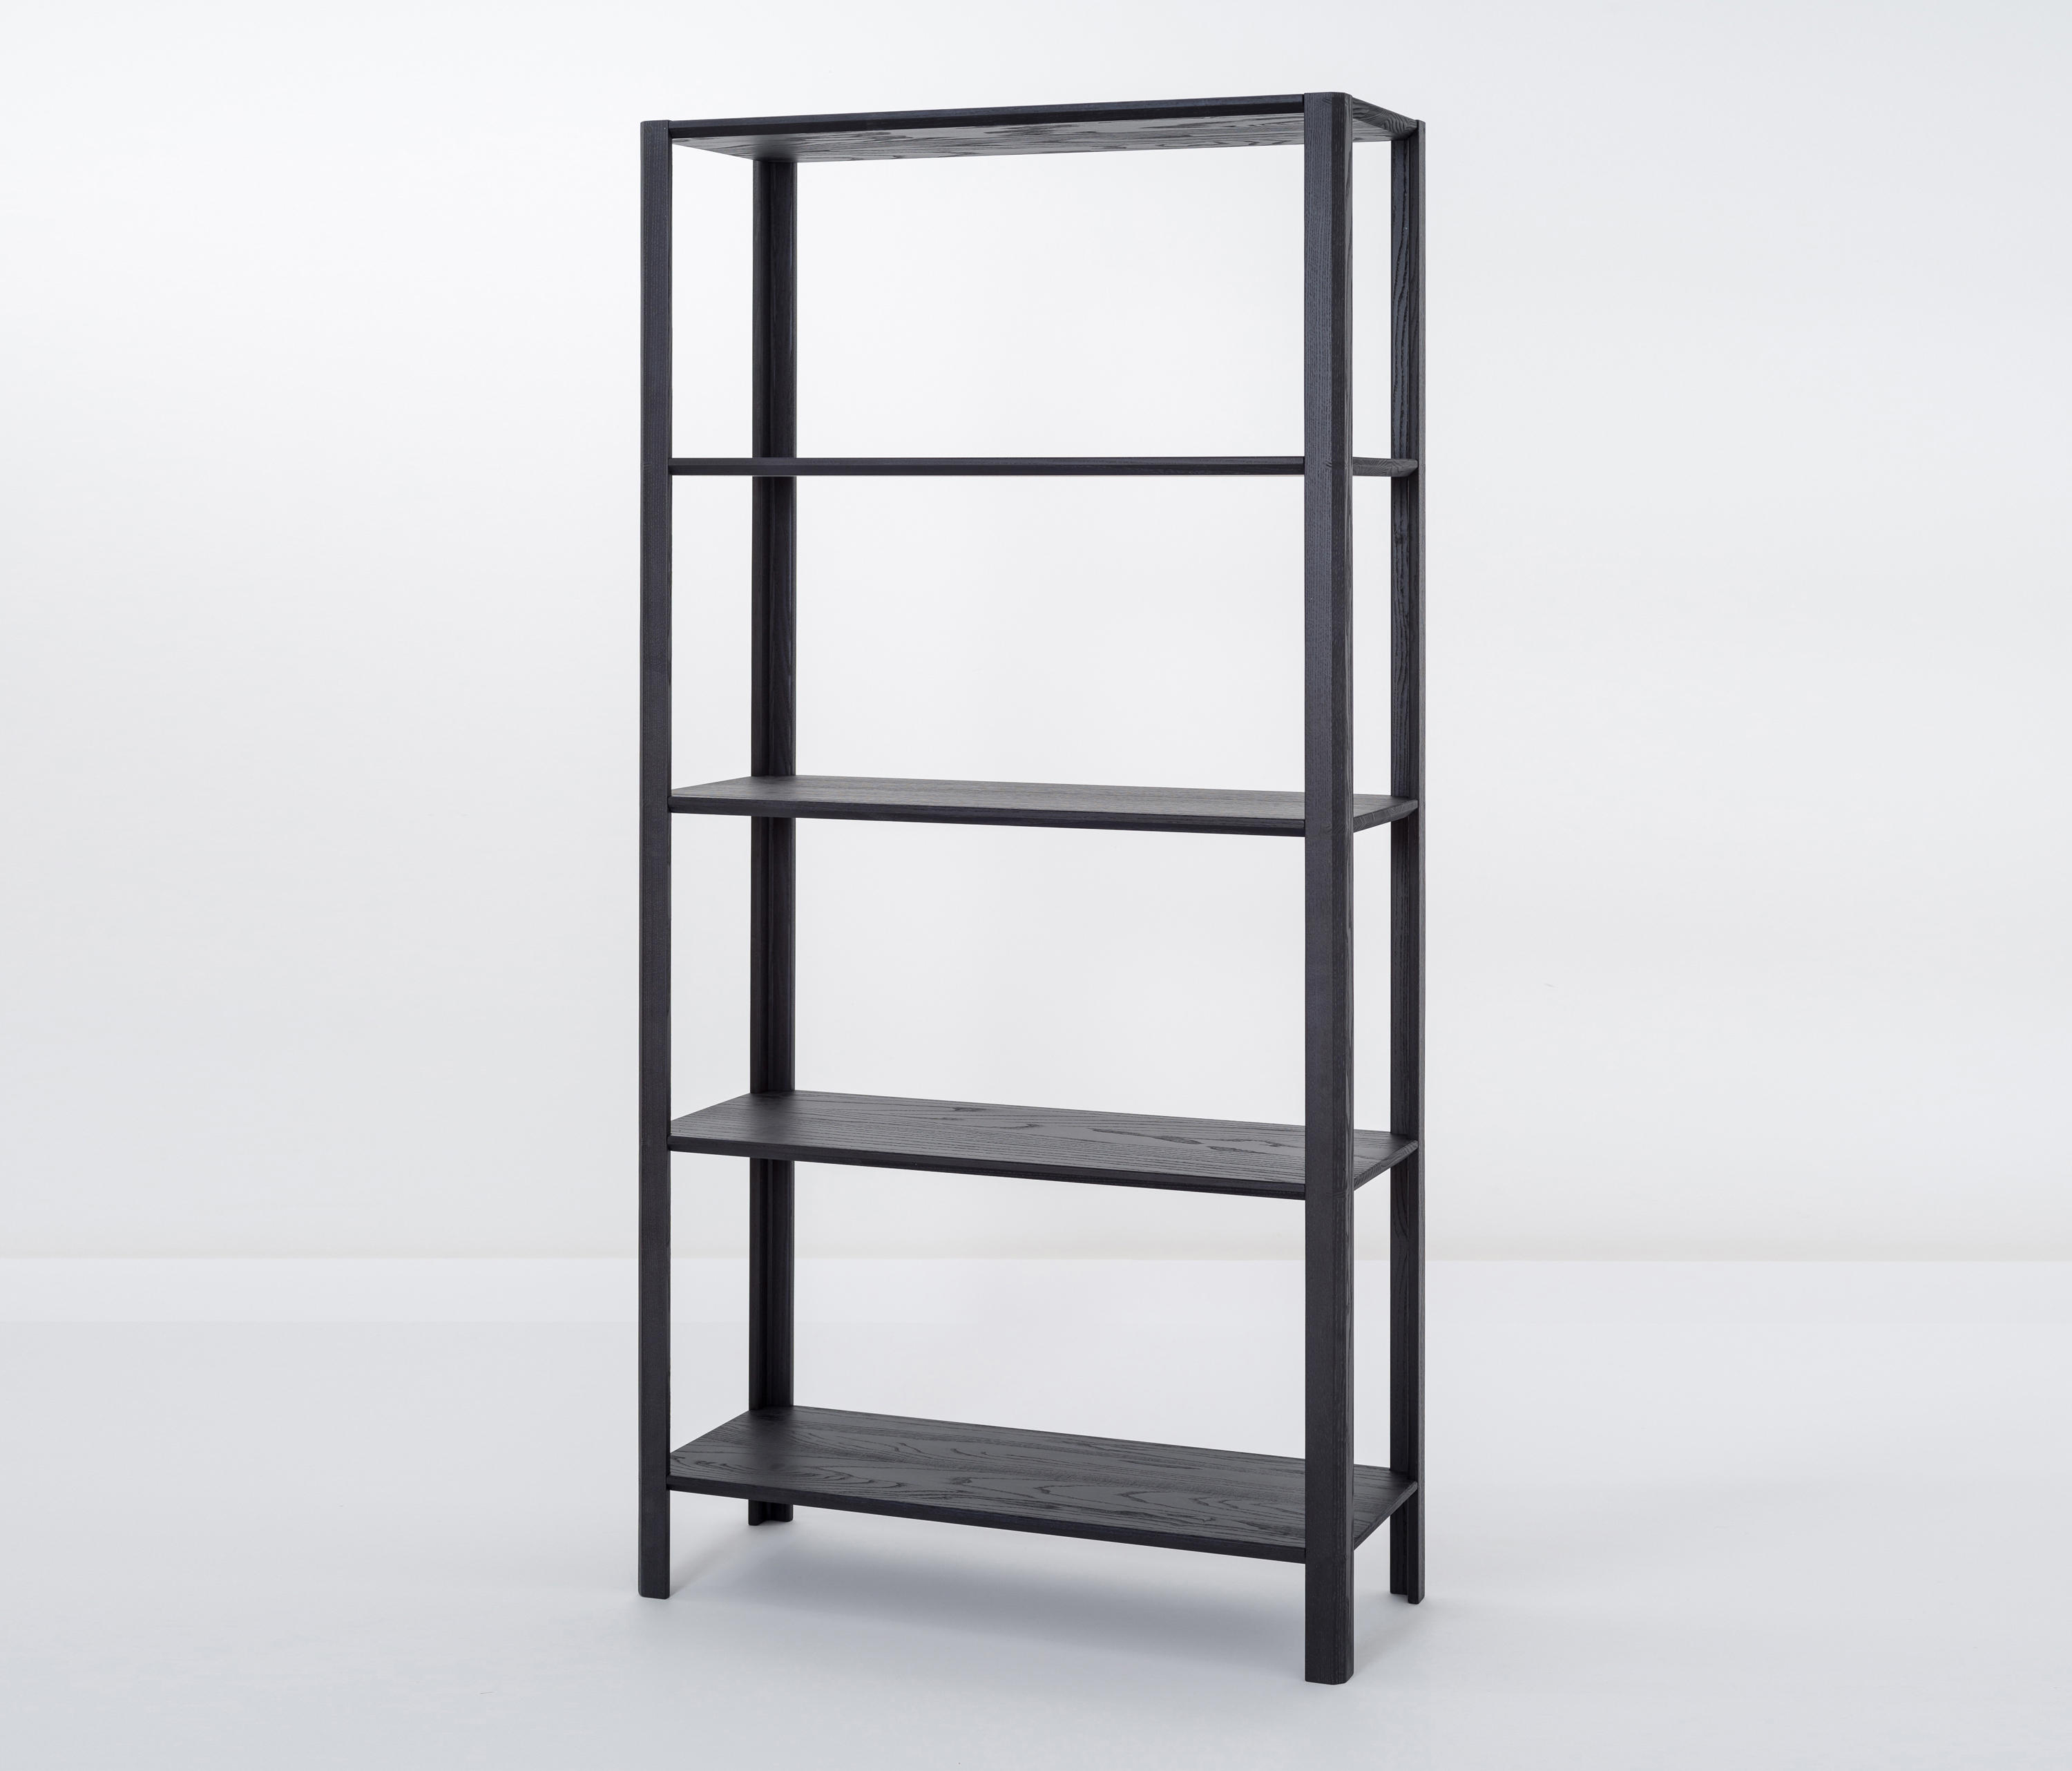 plug shelf l b roregalsysteme von stattmann neue moebel architonic. Black Bedroom Furniture Sets. Home Design Ideas